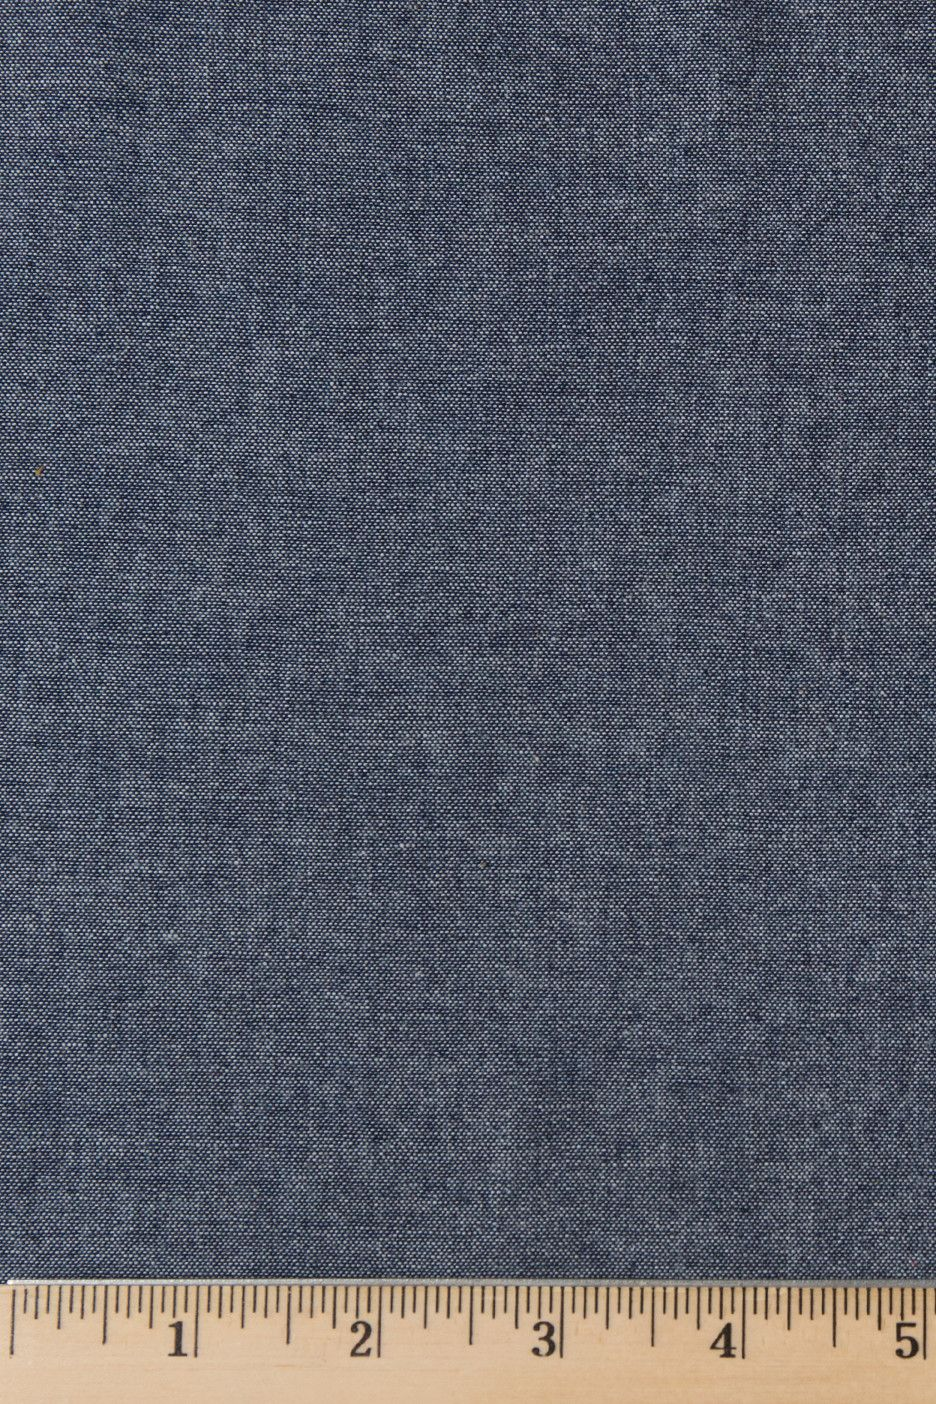 Tissus Chambray Les Tours a pure cotton, midweight chambray fabric perfect for